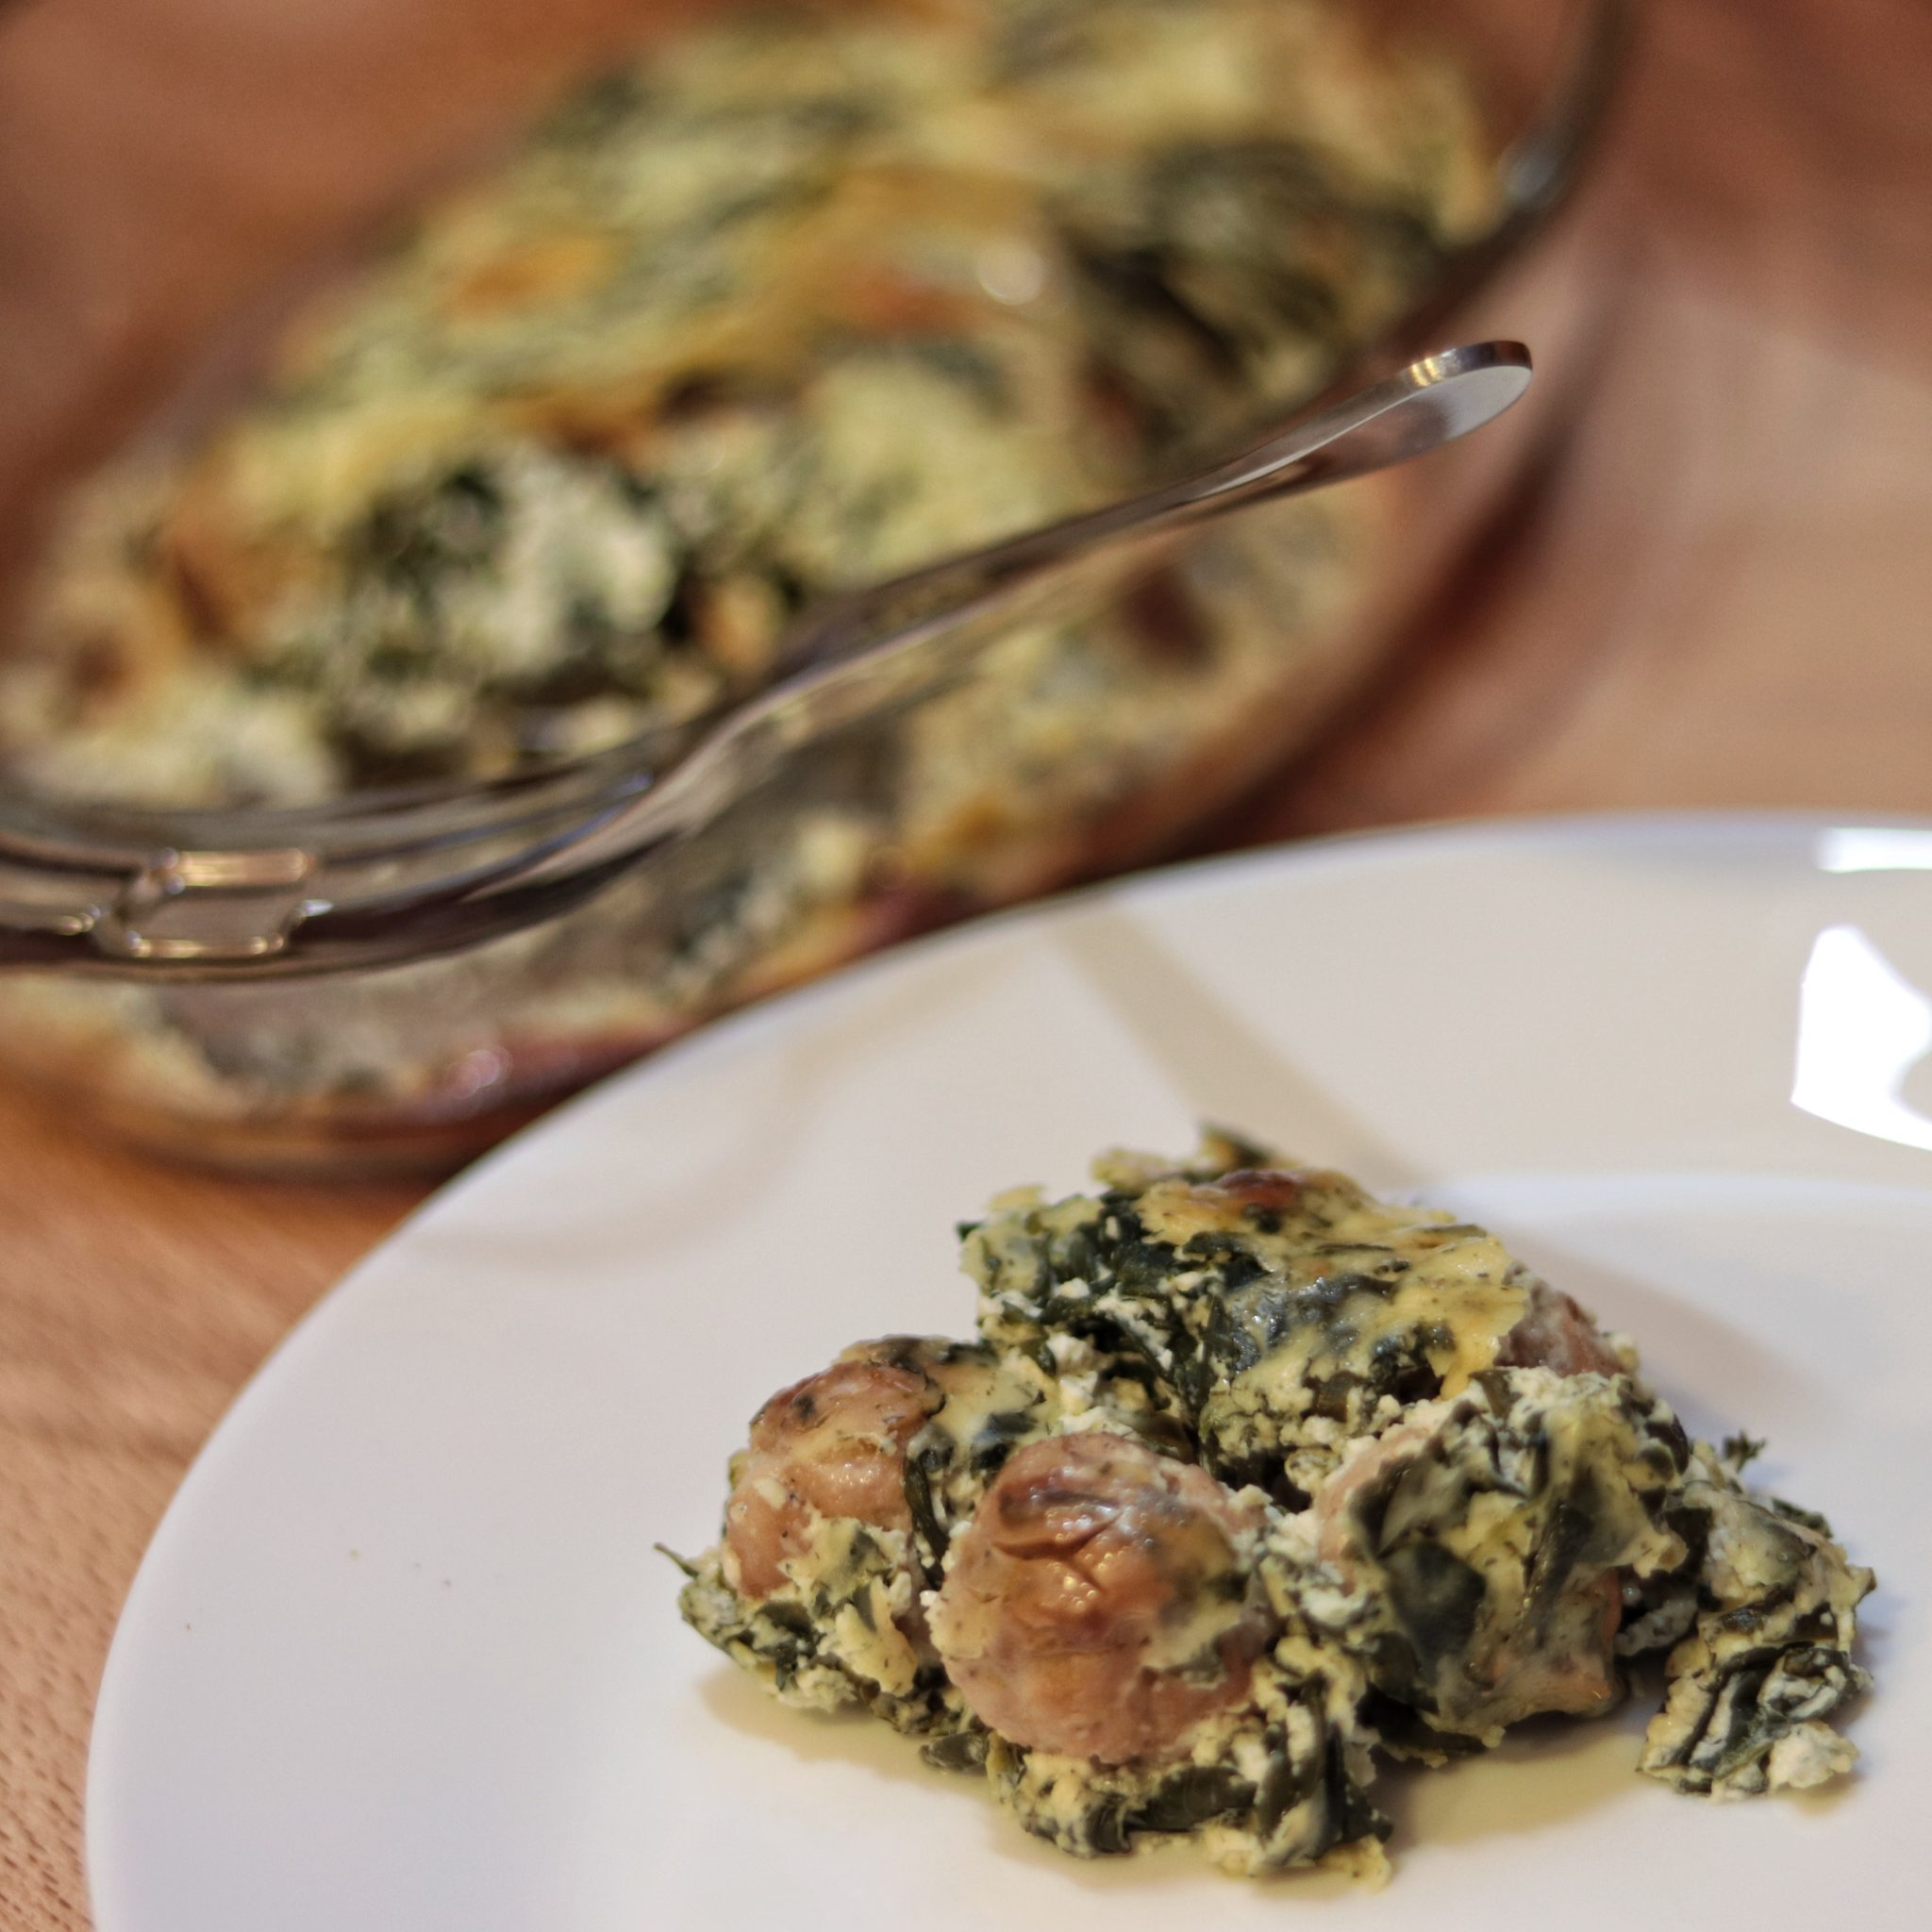 Creamy Spinach Casserole with Turkey Meatballs